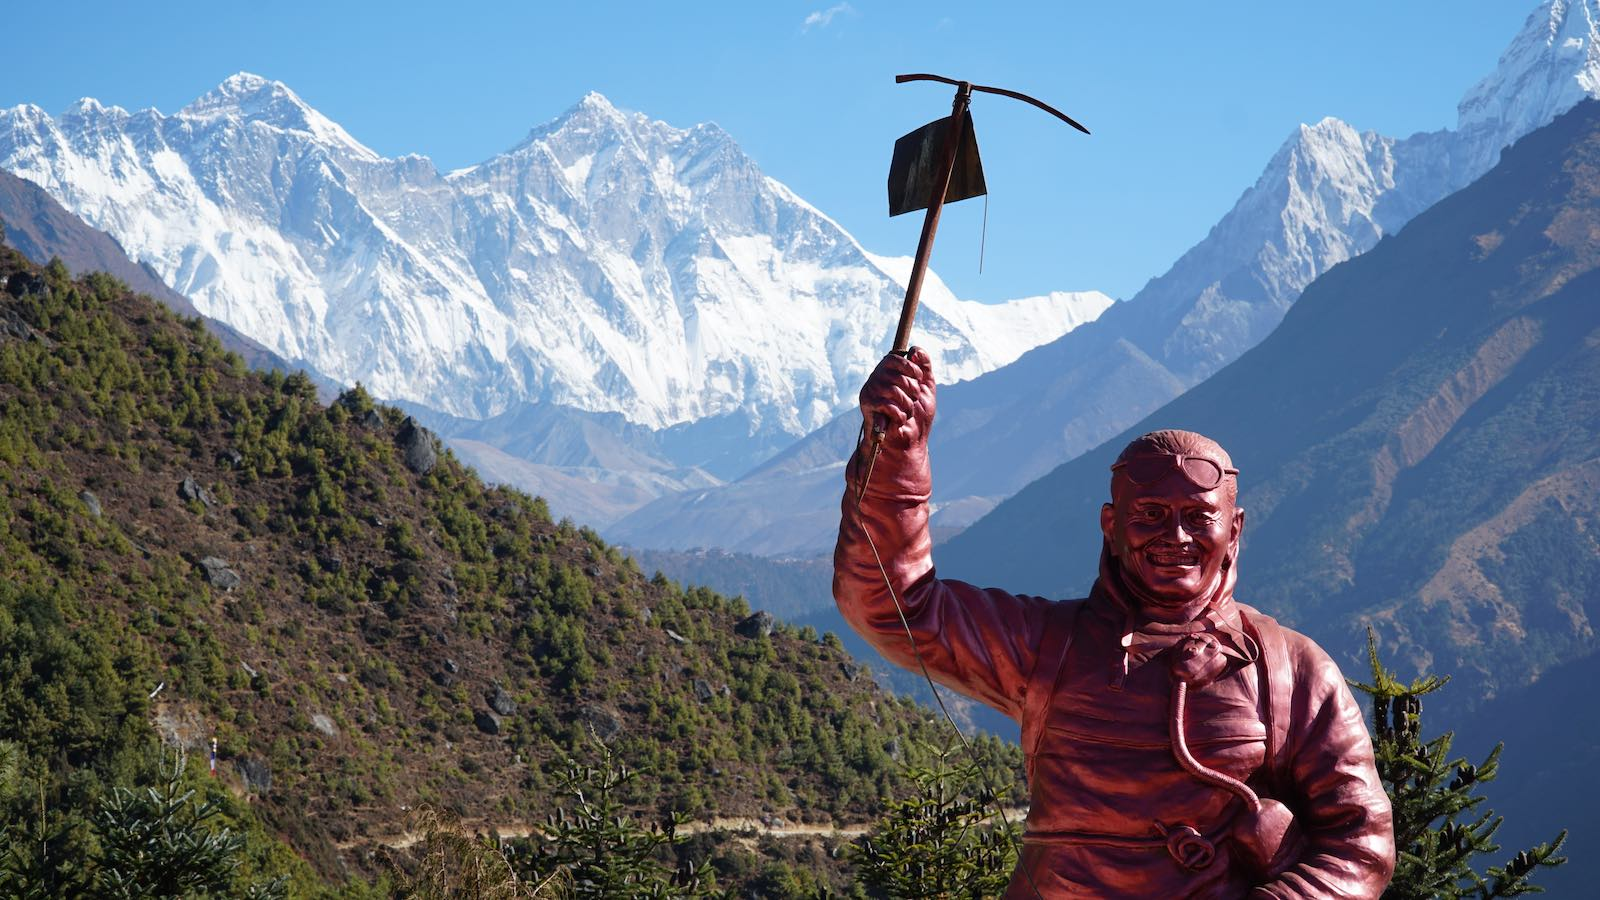 Did a quick hike in the morning to a viewpoint above Namche with a statue of Tenzing Norgay Sherpa, where I got my first good look at Everest (leftmost peak) and Lhotse (center left peak)